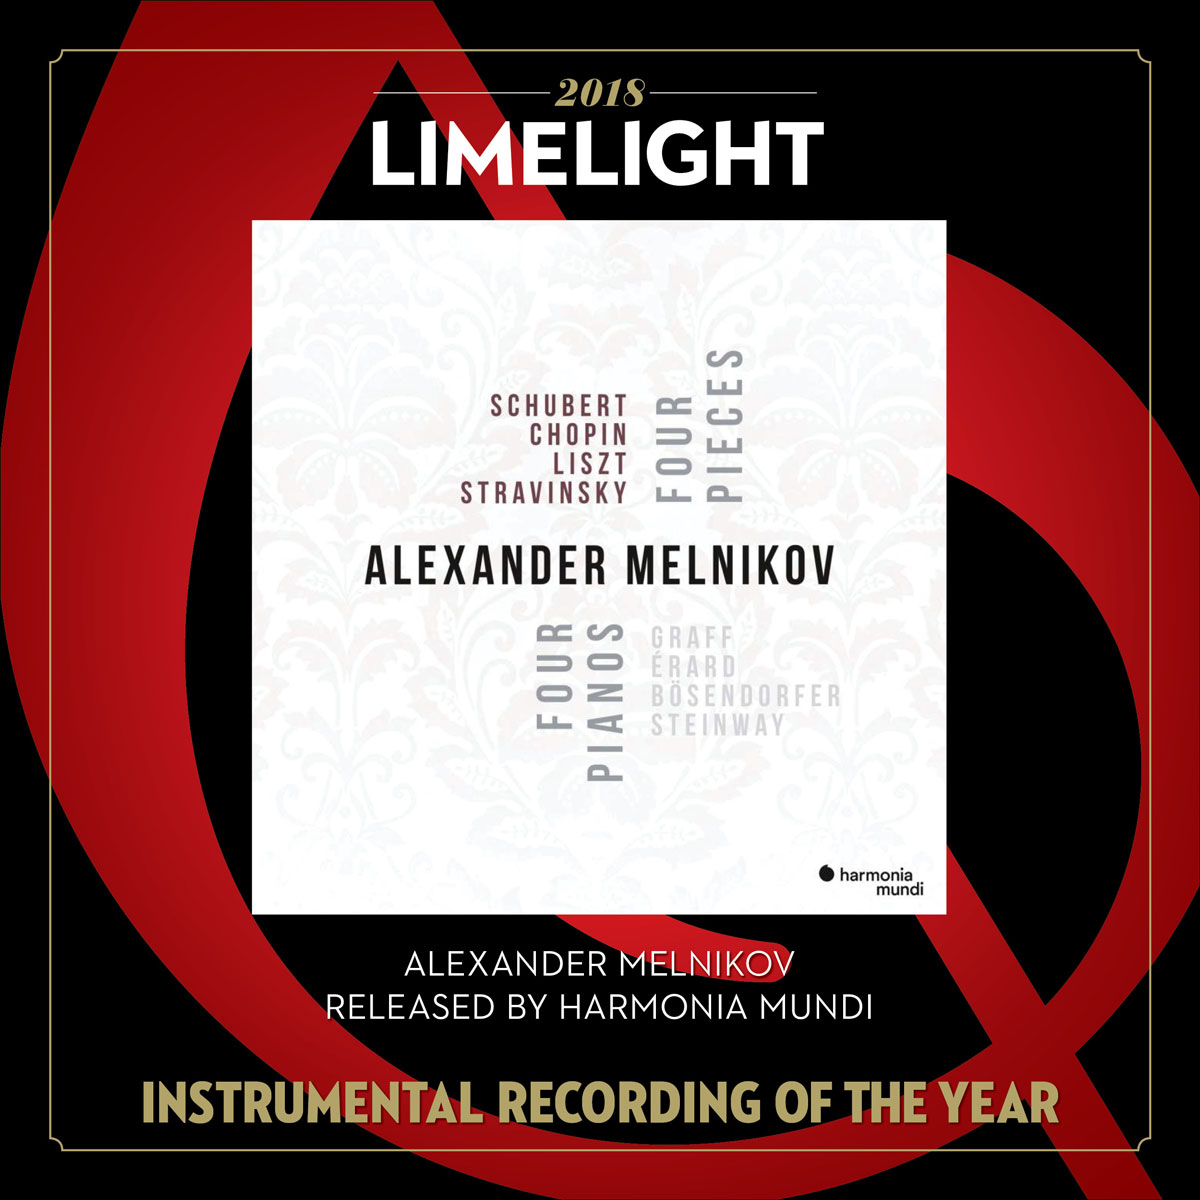 Recording of the Year, Instrumental